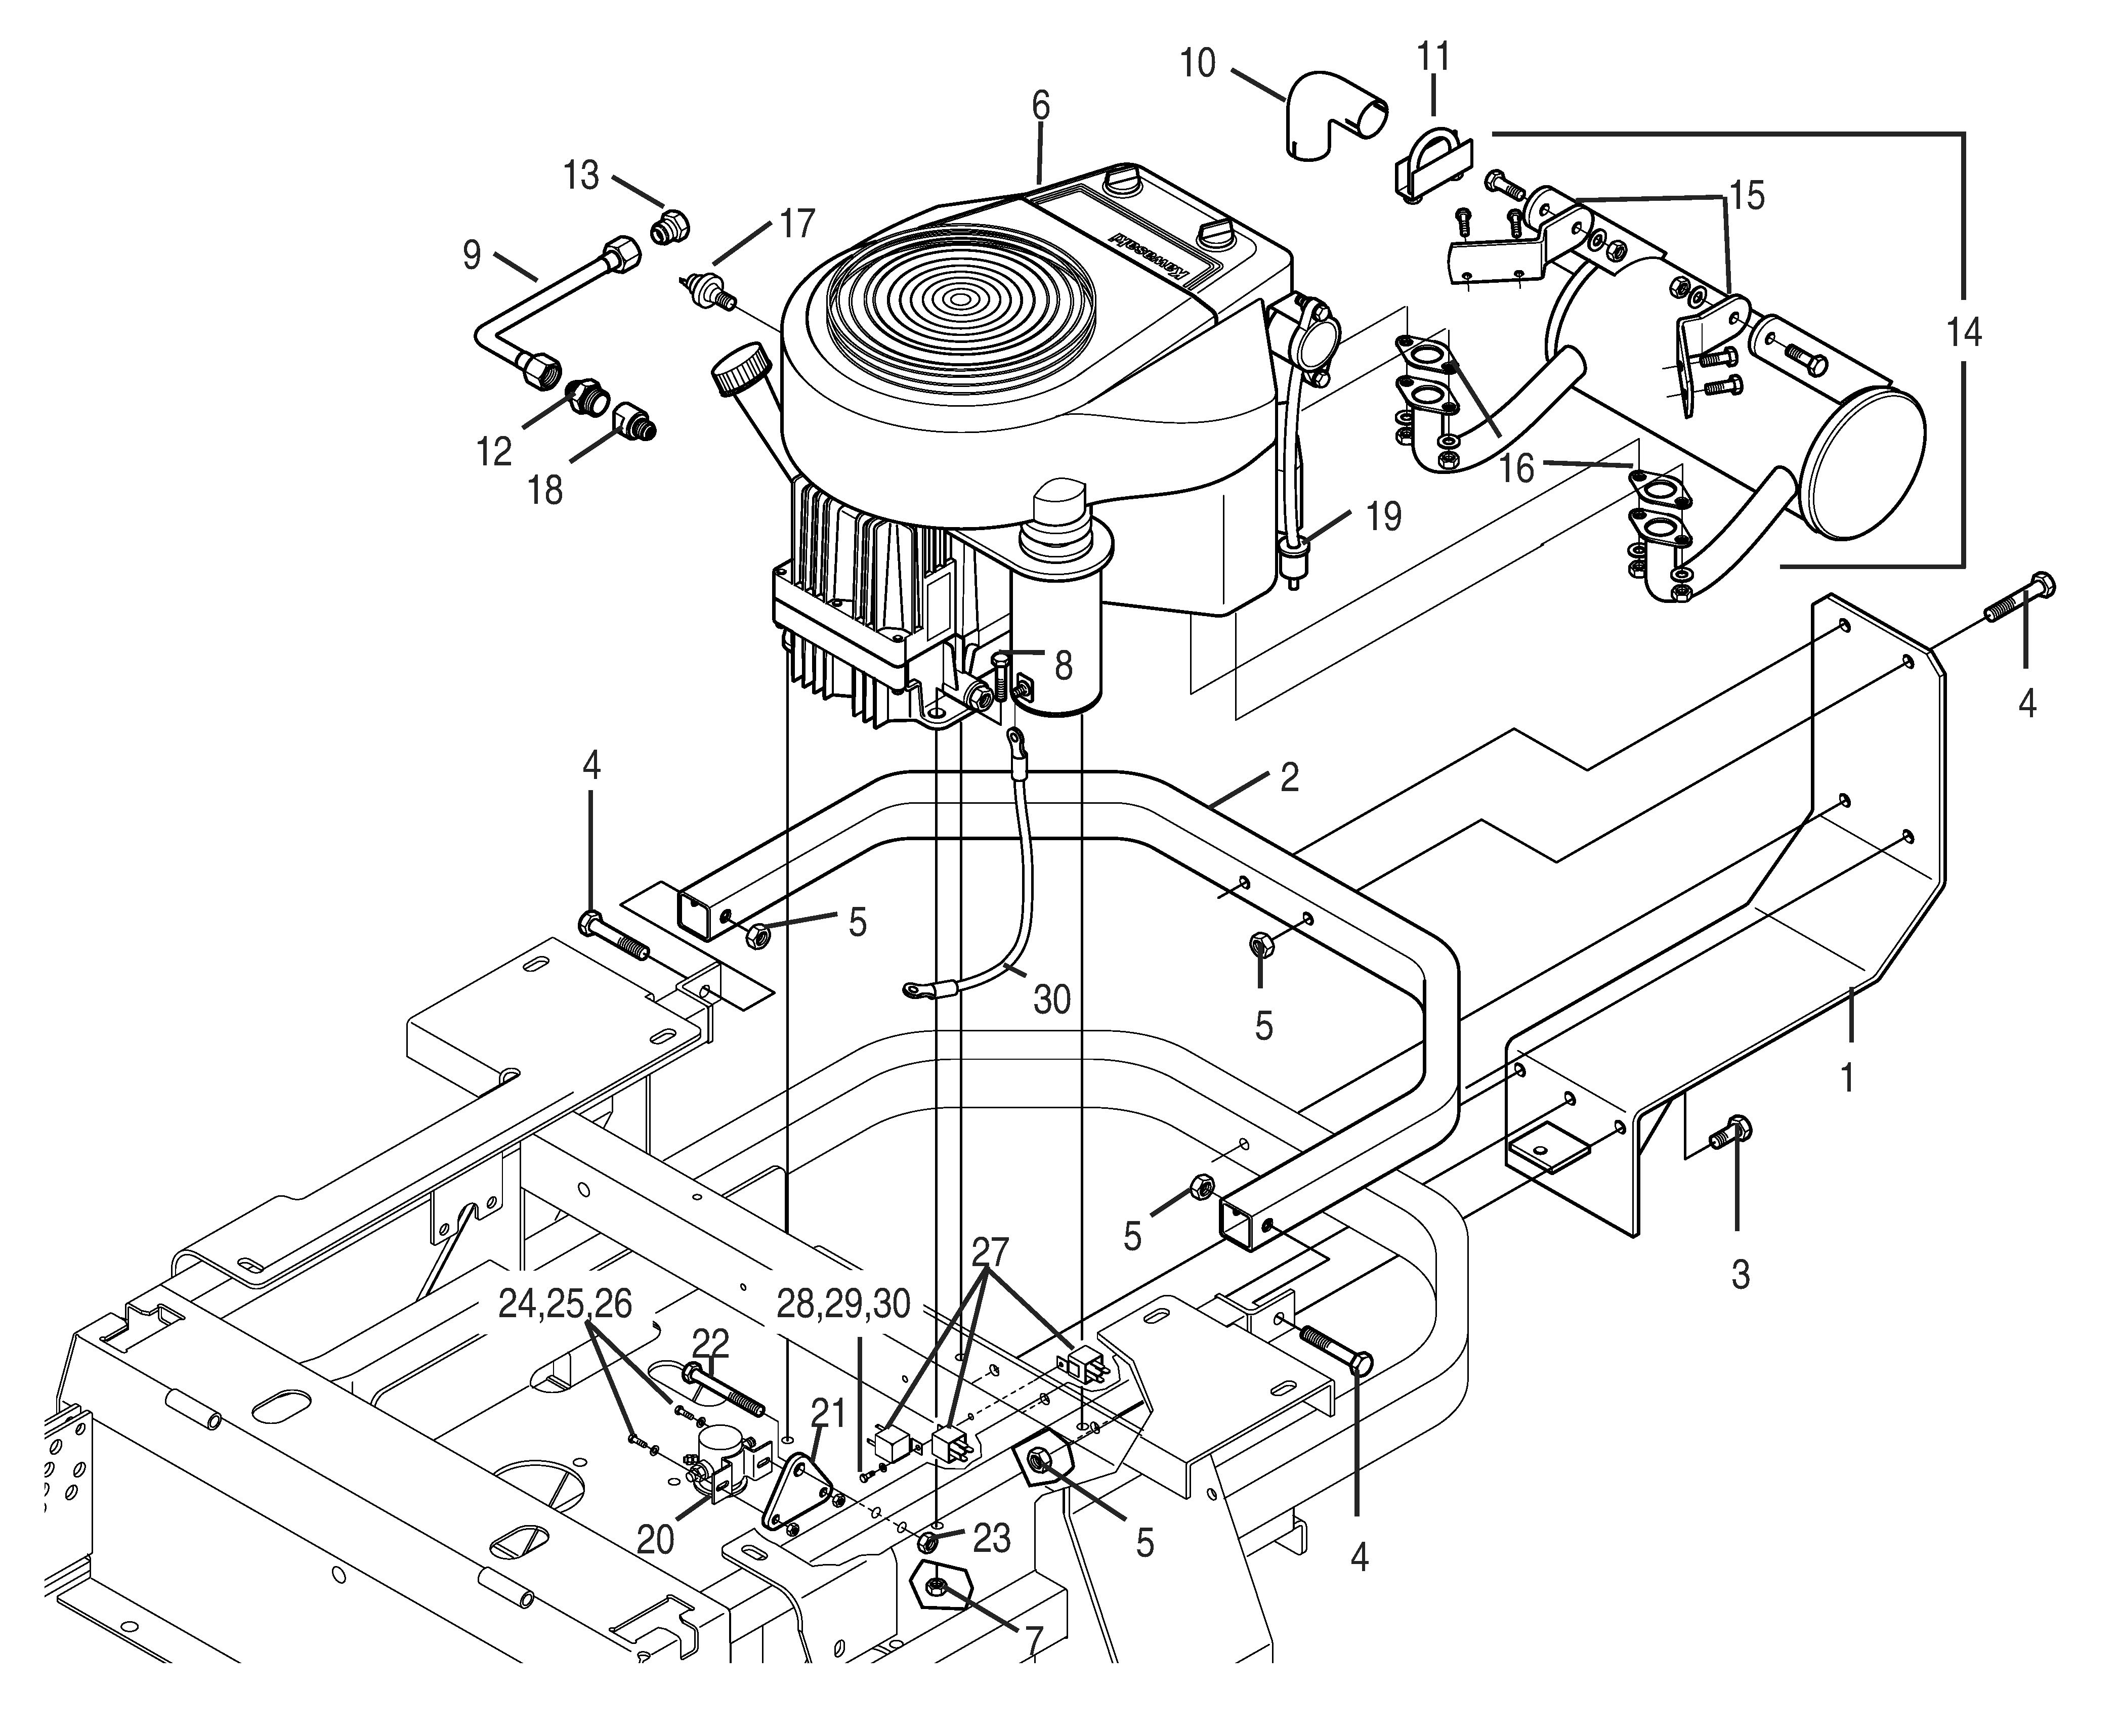 Bush Hog M2561 Mid Mount Zero Turn Parts Kawasaki Engine Mounting Diagrams Hover Over Image For Expanded View